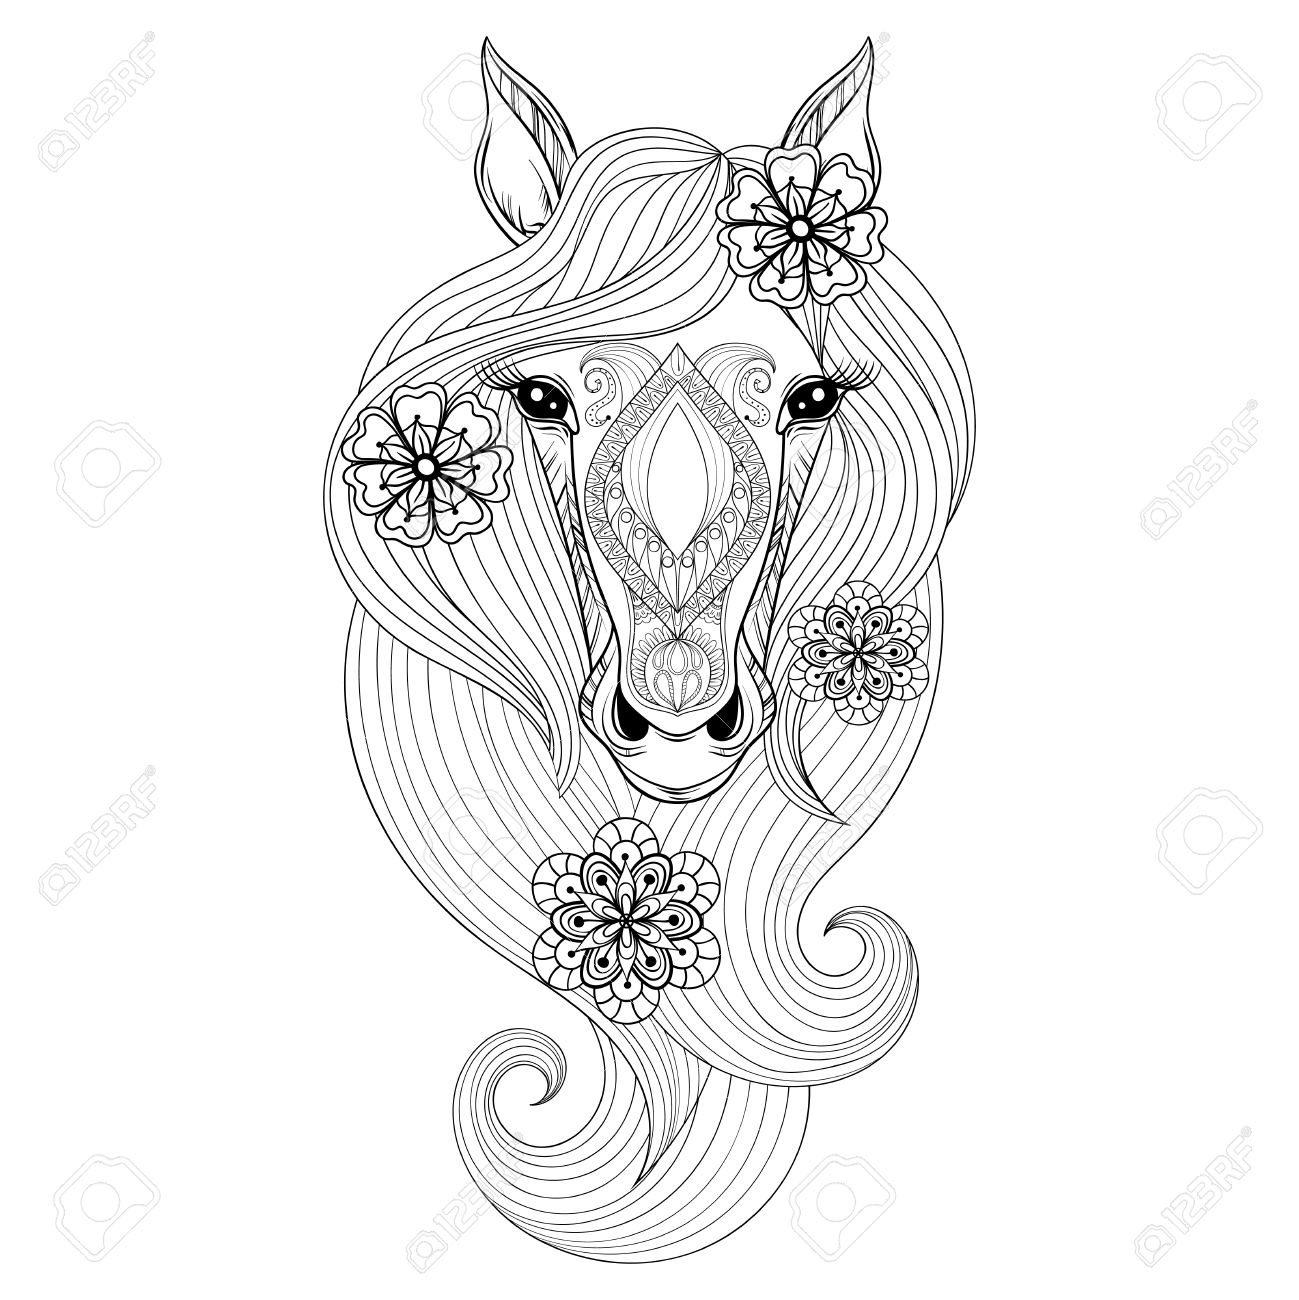 Cheval Vector Coloriage Avec Le Visage De Cheval Hand Drawn